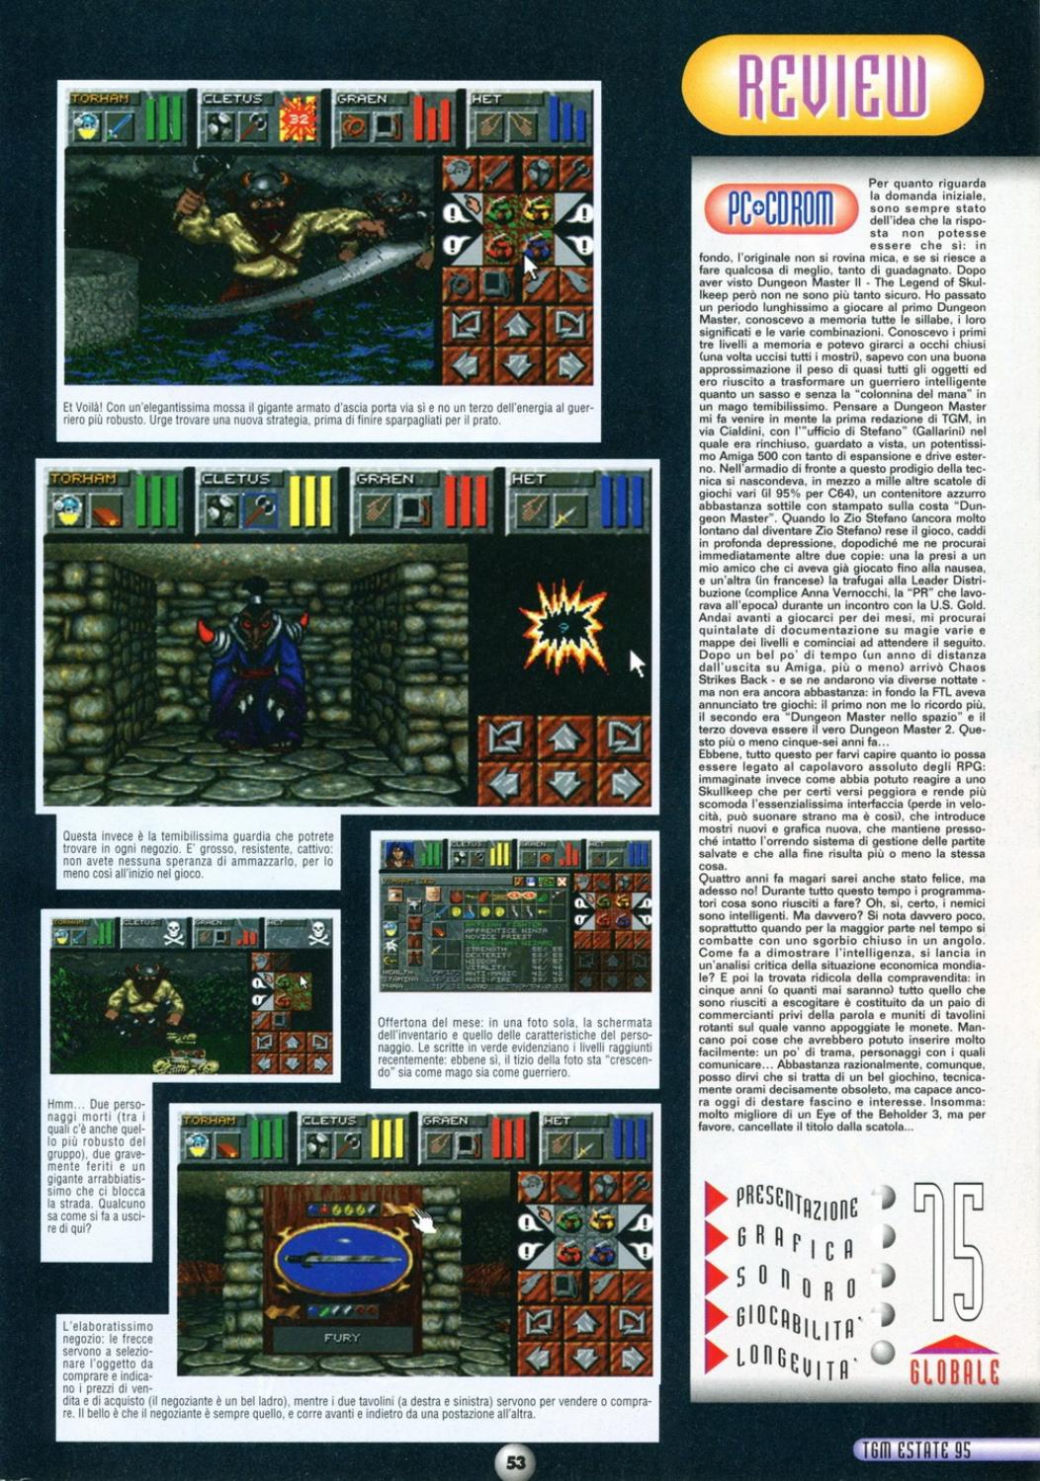 Dungeon Master II for PC Review published in Italian magazine 'The Games Machine', Issue #77 July-August 1995, Page 53